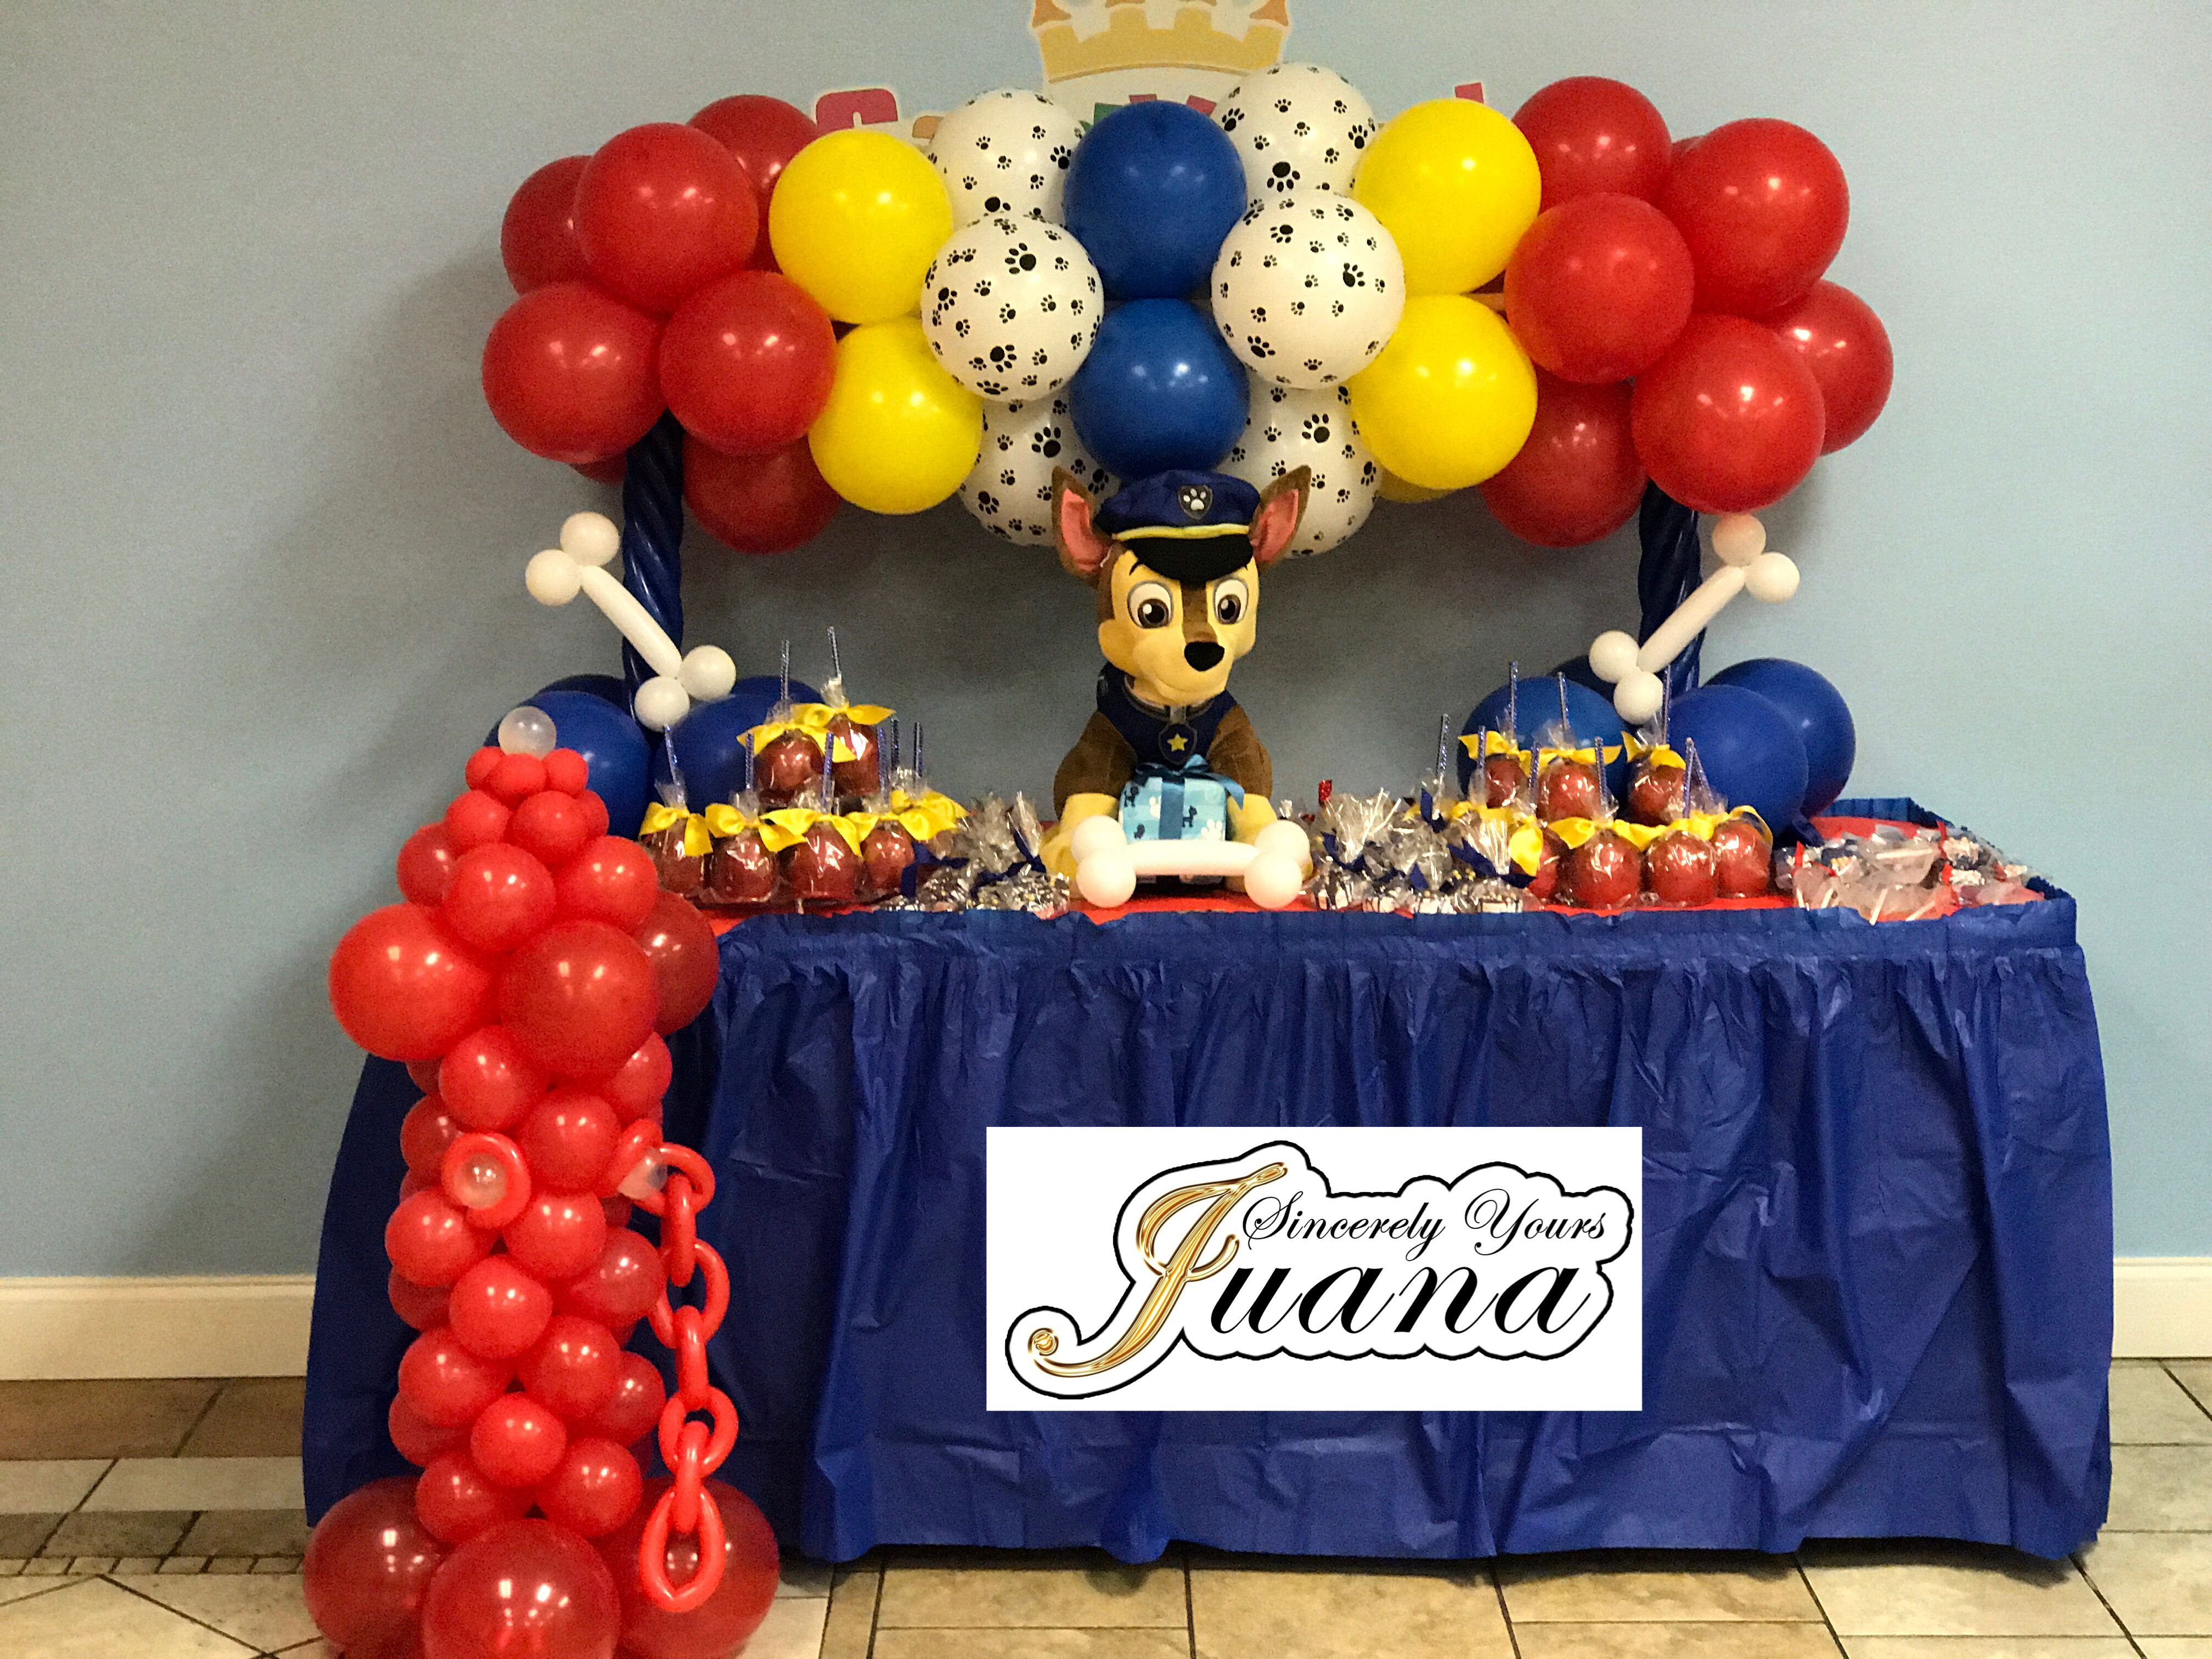 Paw Patrol Candy Table And Decor Candy Birthday Party Paw Patrol Birthday Party Paw Patrol Birthday